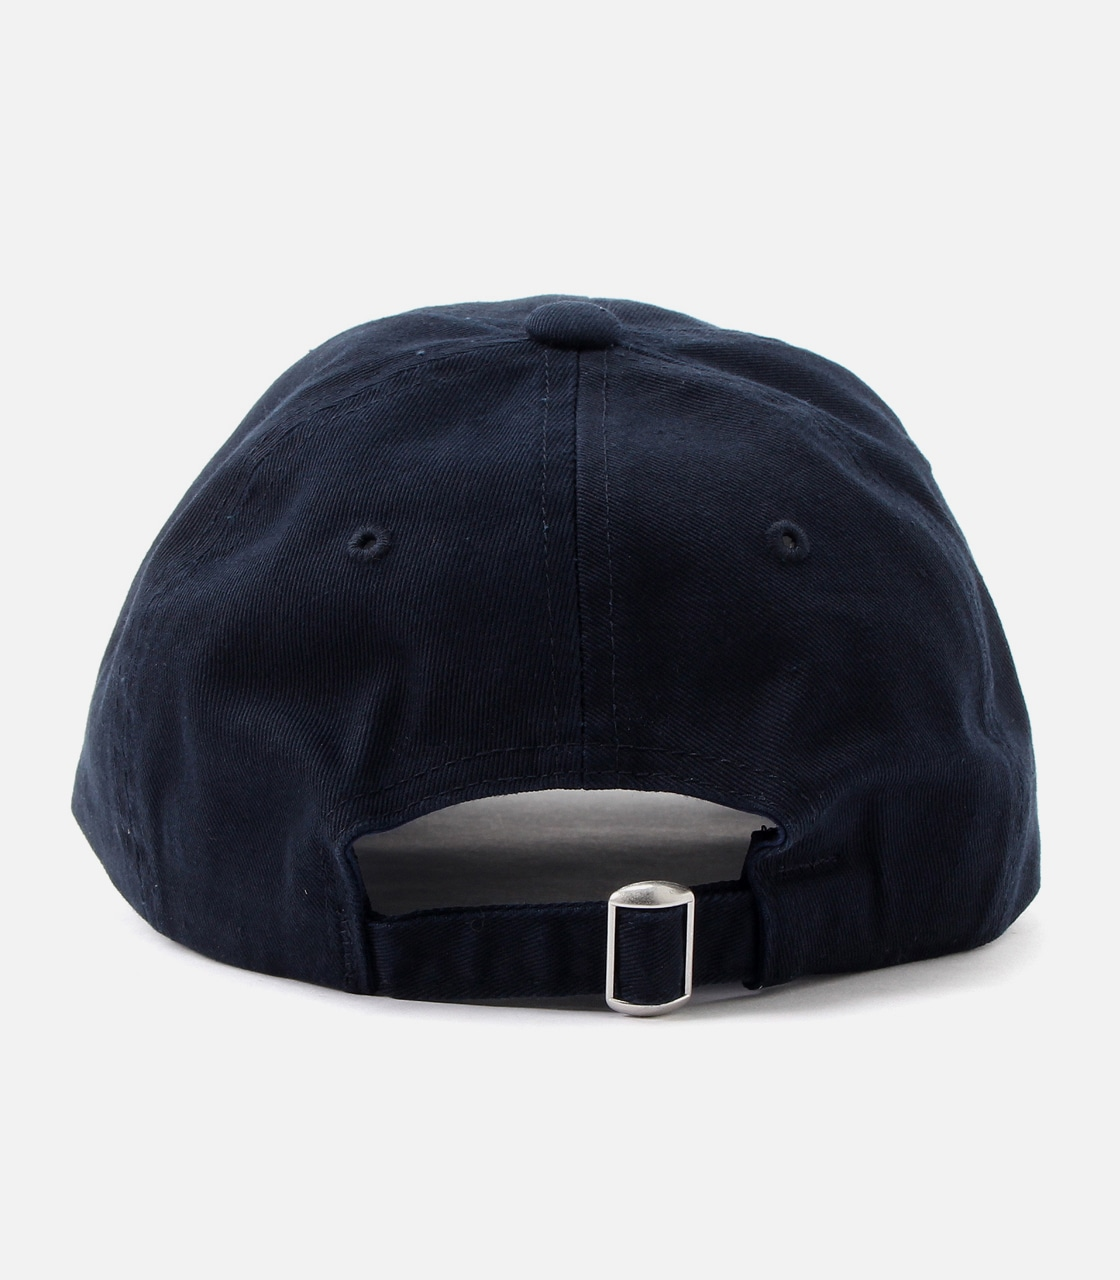 【AZUL BY MOUSSY】BASIC TWILL CAP 【MOOK49掲載 90020】 詳細画像 NVY 3